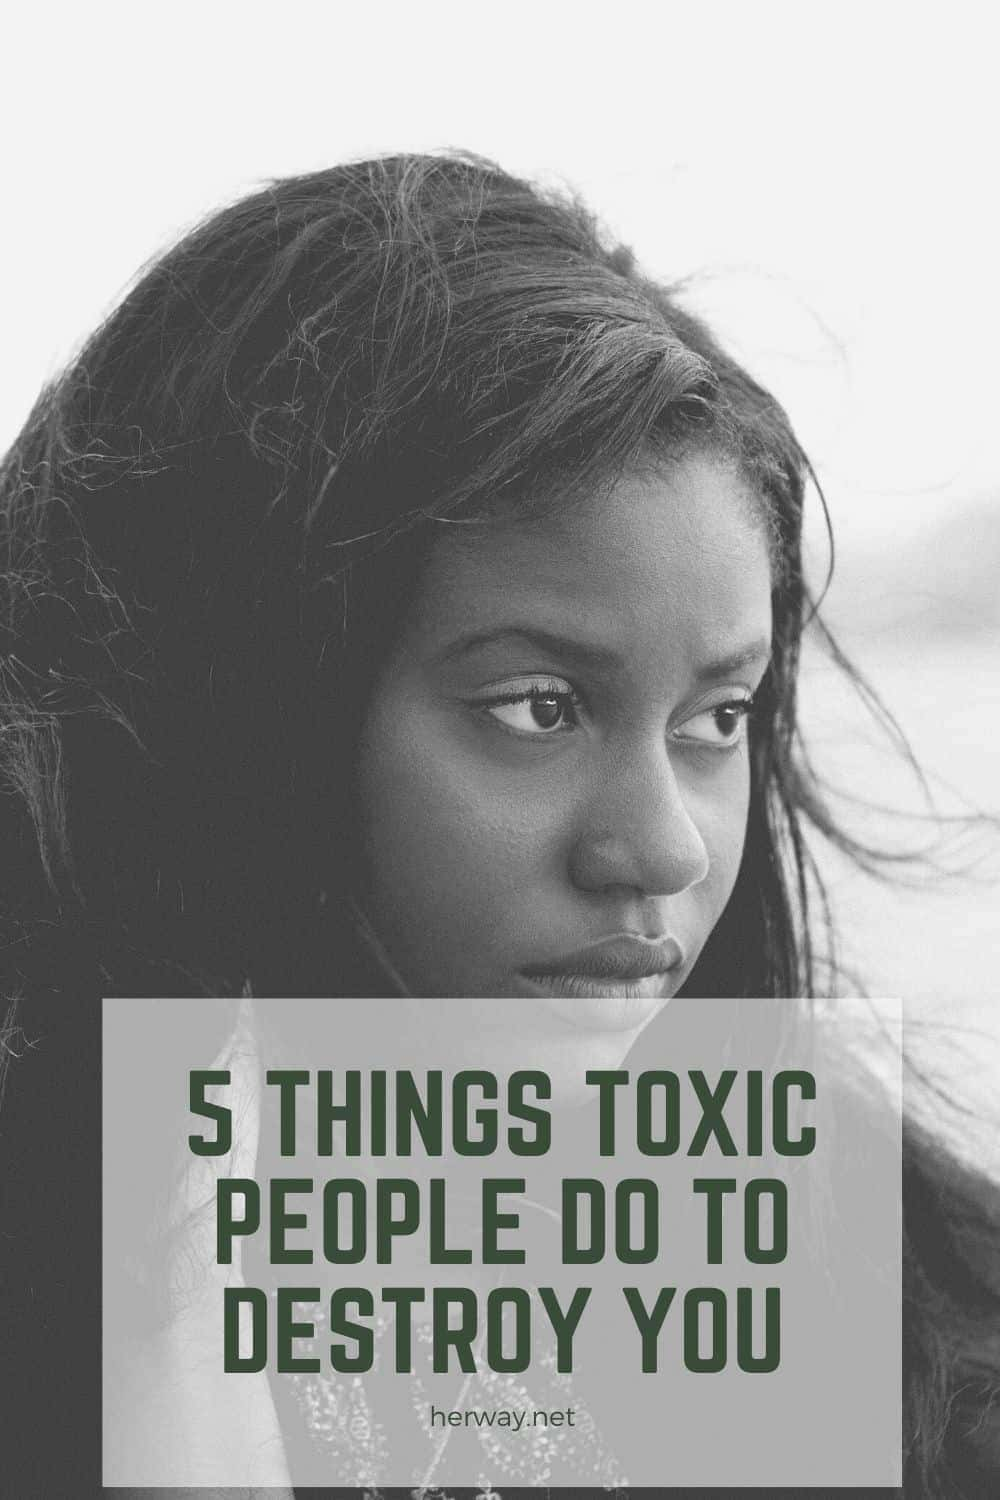 5 Things Toxic People Do To Destroy You